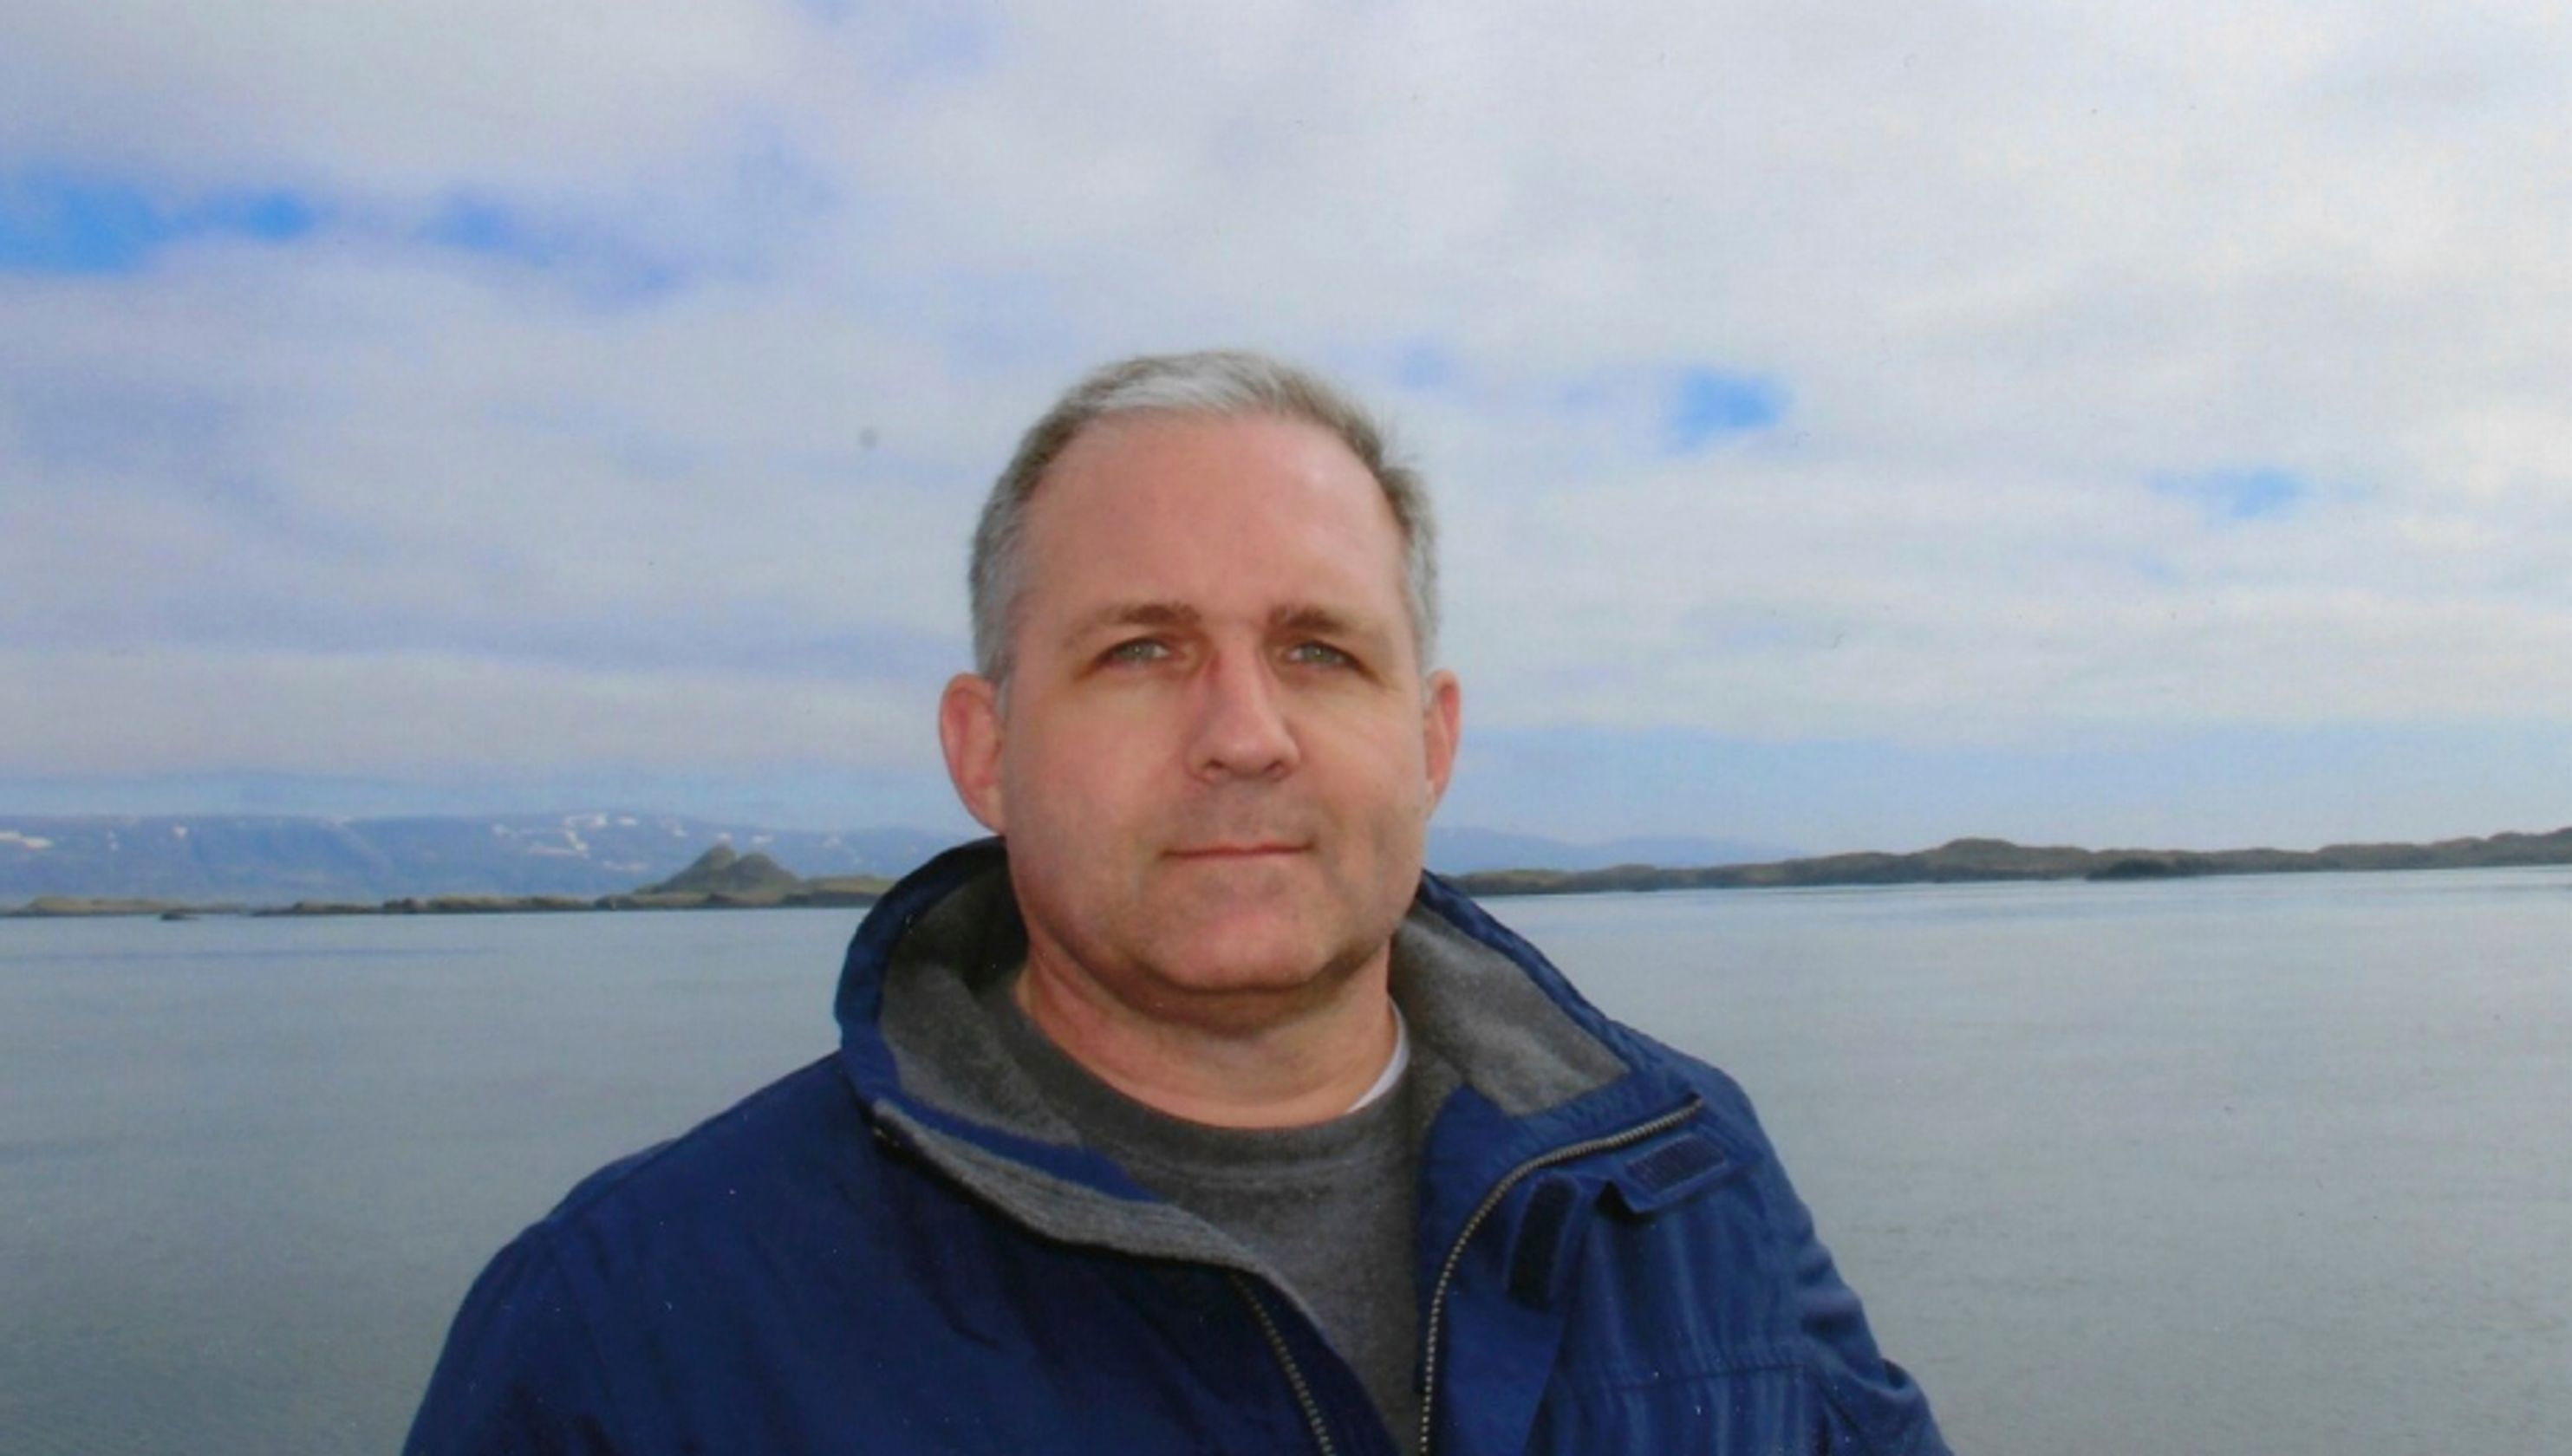 Russia: Too early to consider exchange of US spy suspect Paul Whelan